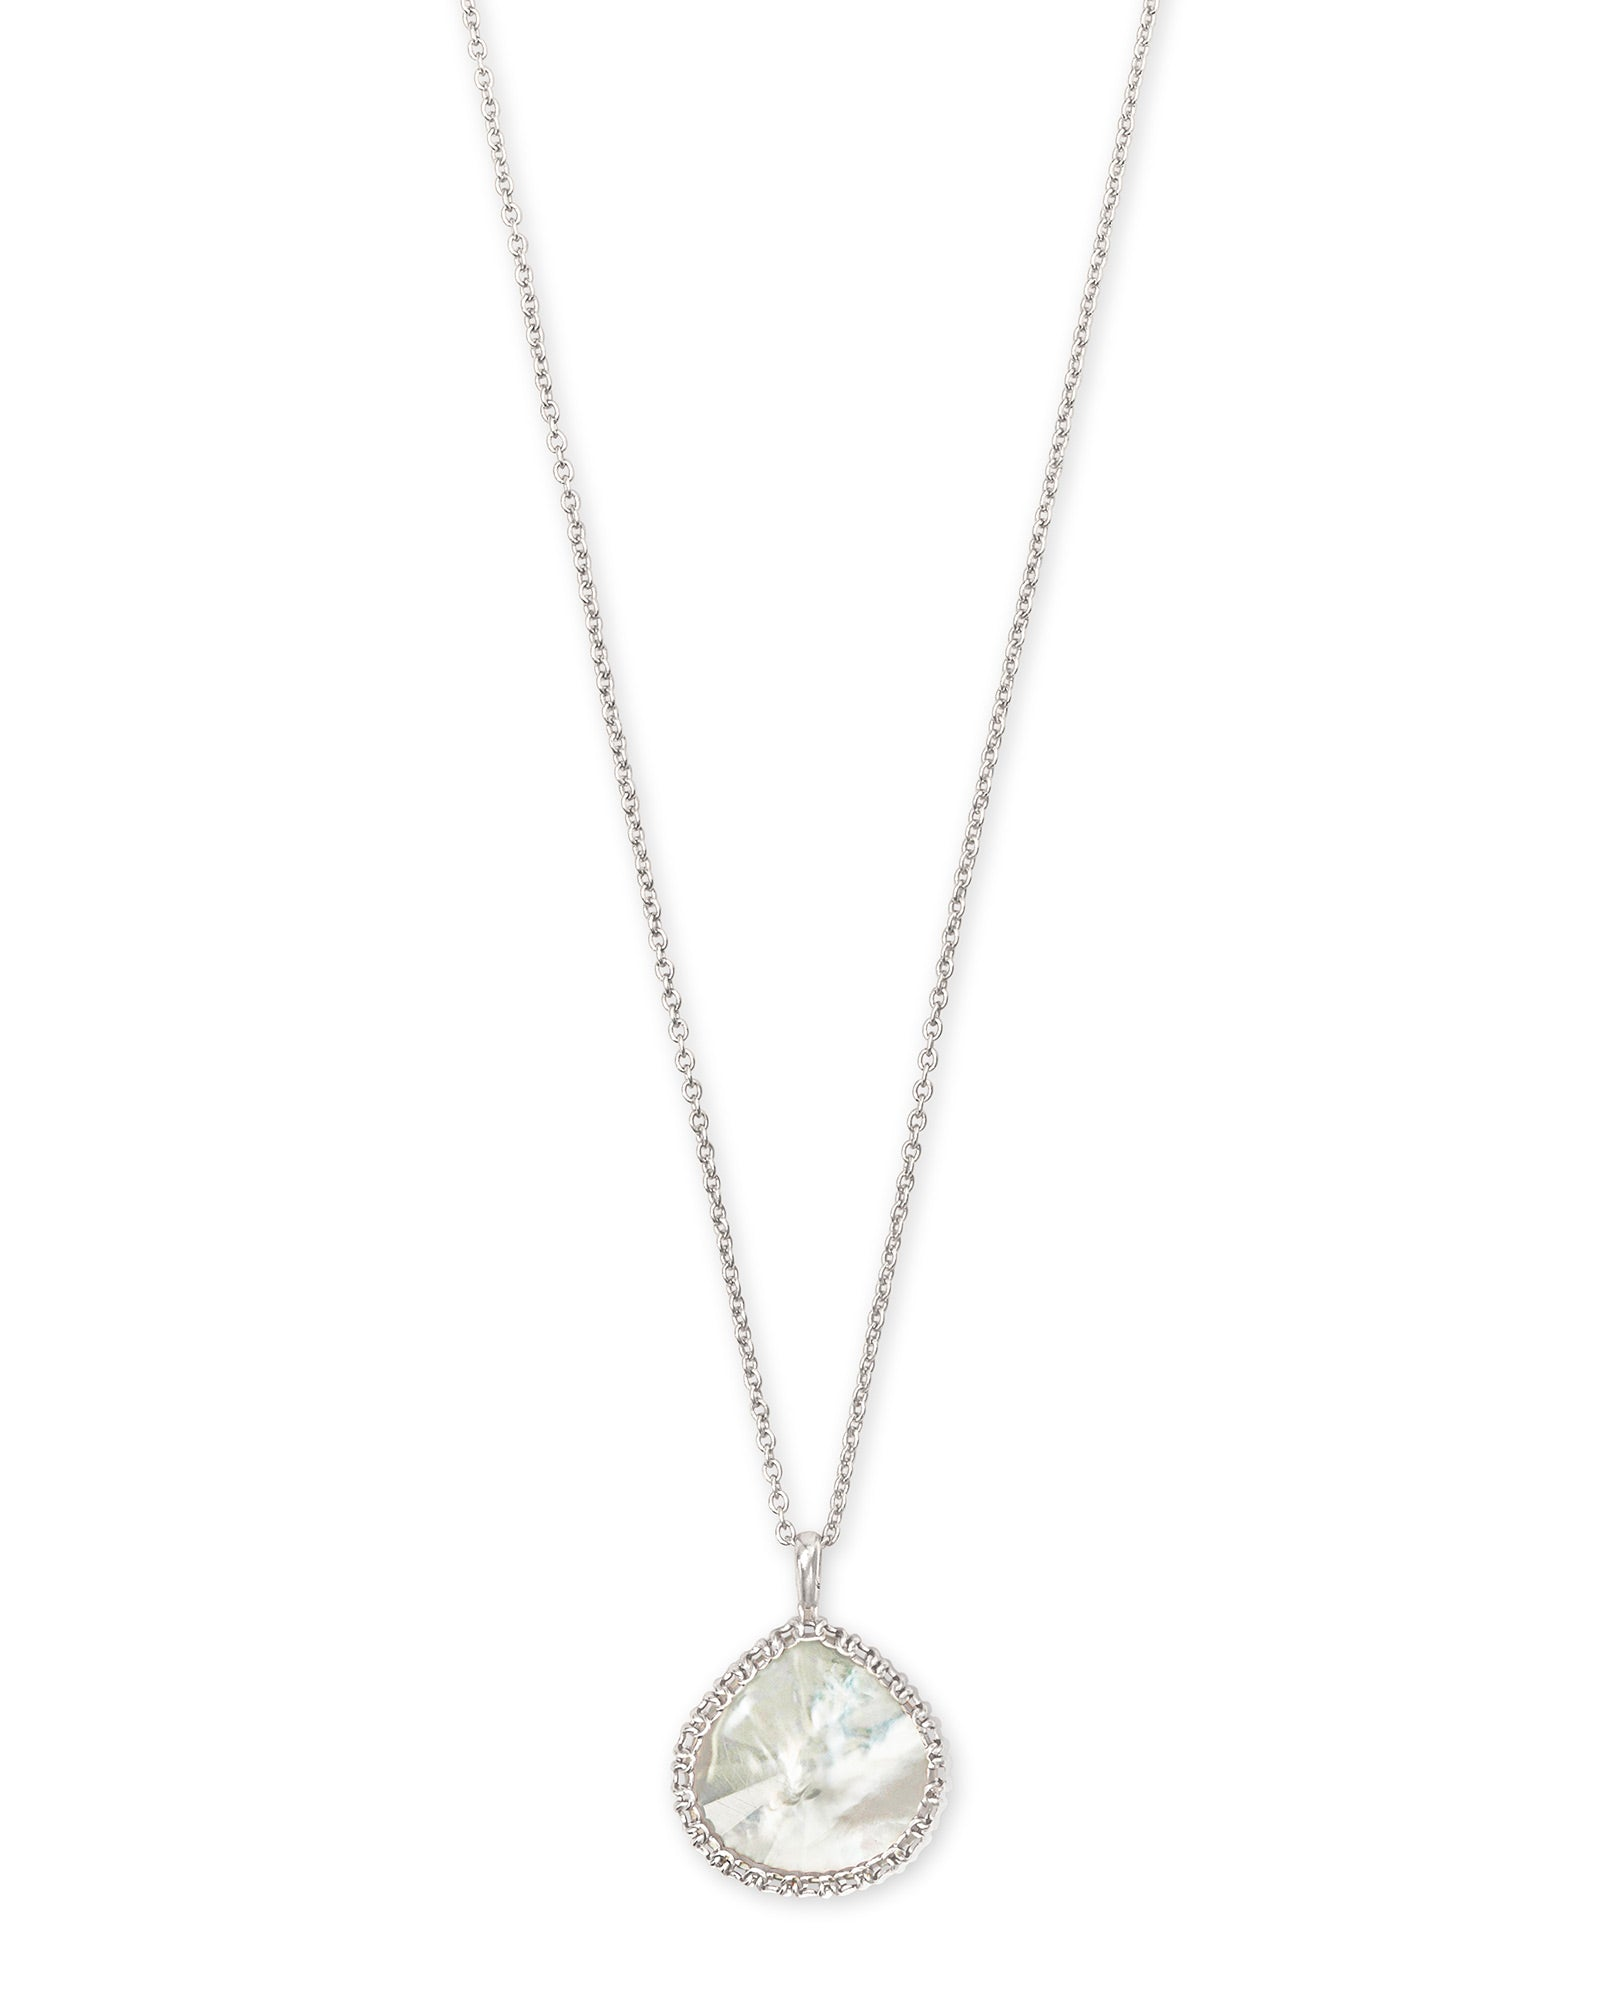 Kenzie Rhodium Necklace in Ivory Mother Of Pearl